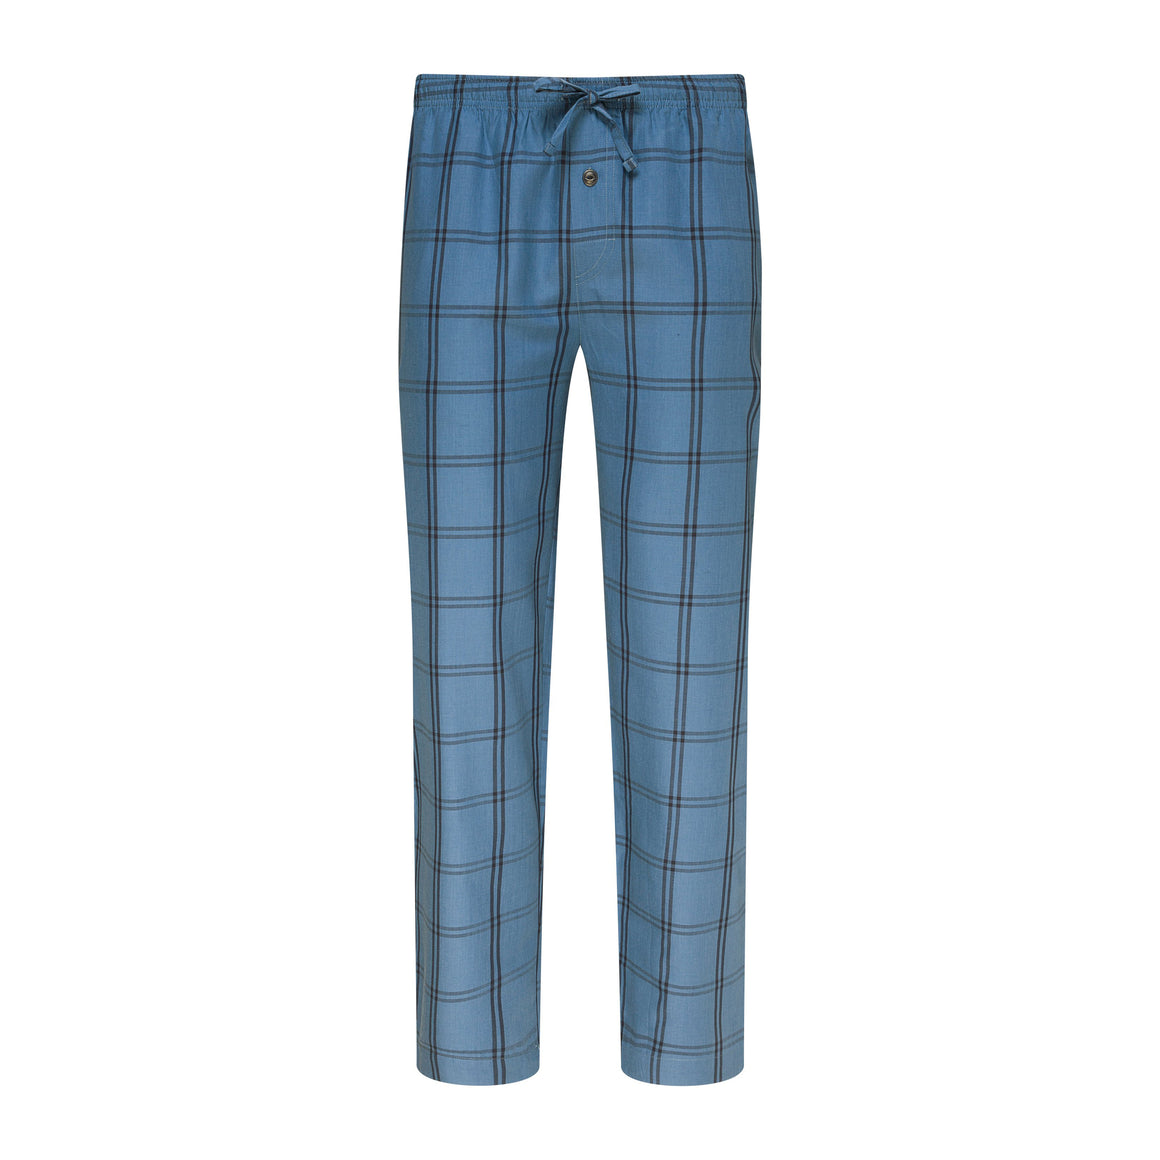 Woven Lounge Pants for Men in Denim